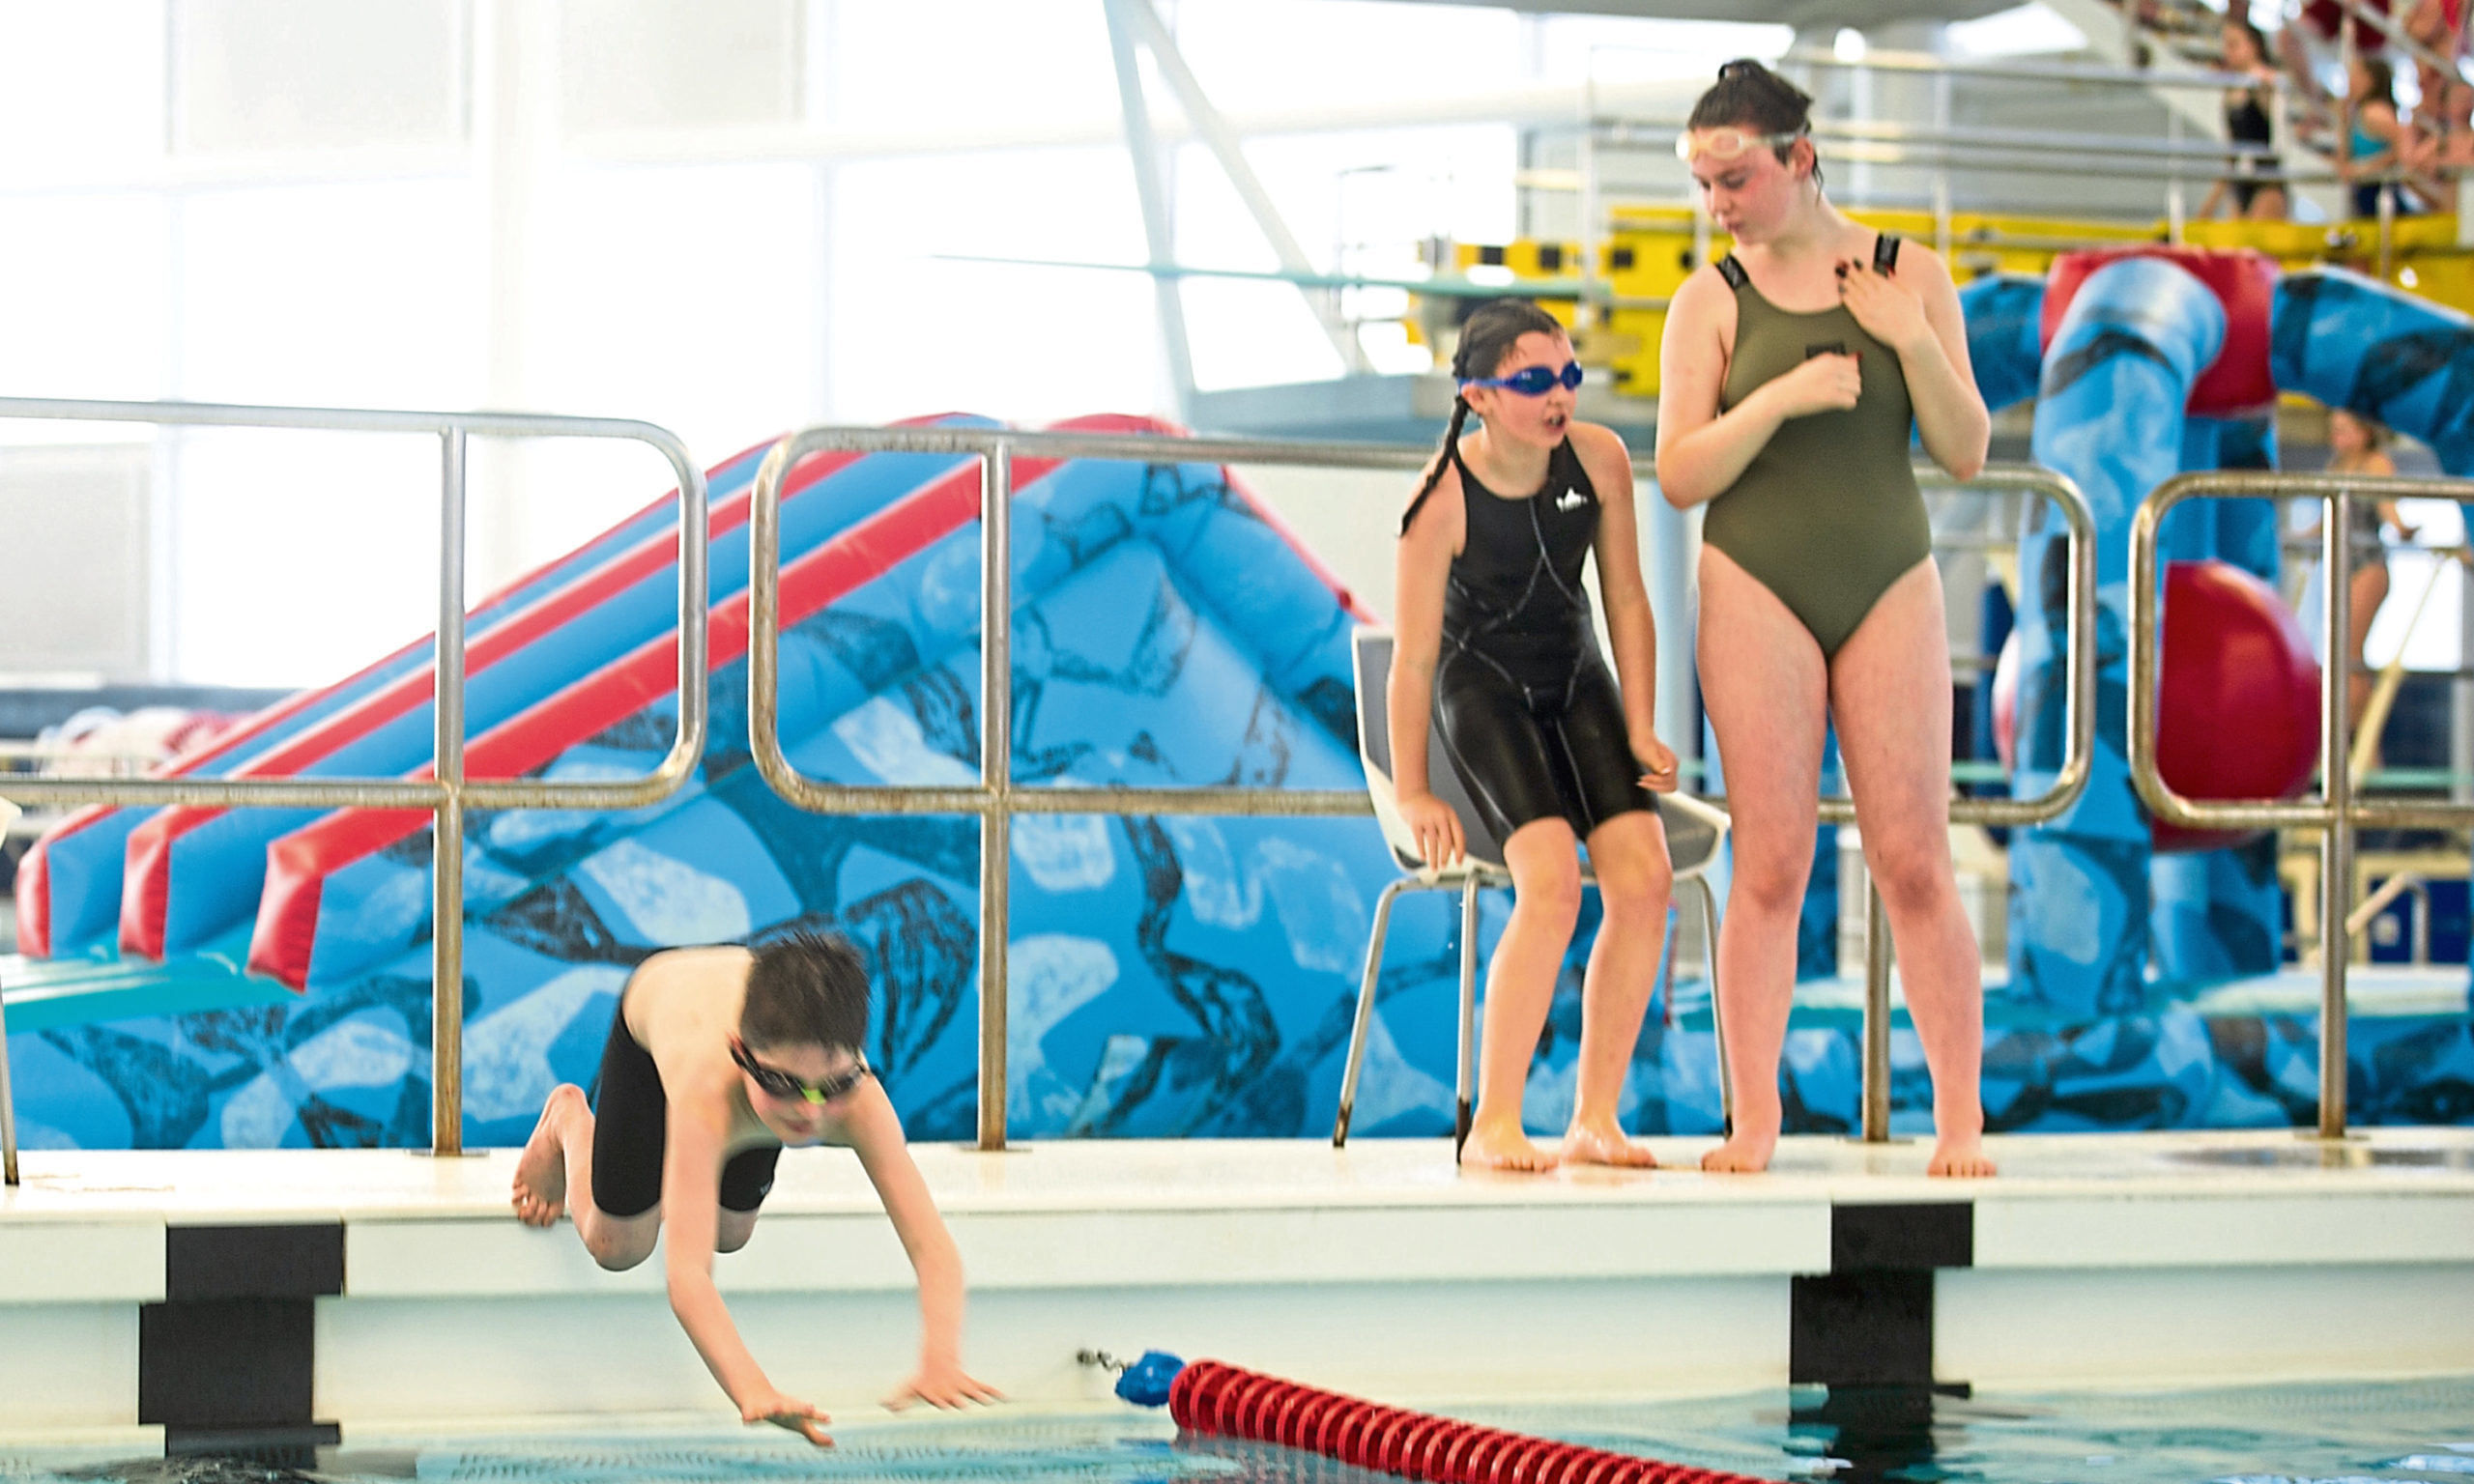 Swimmers taking part in the relay event.